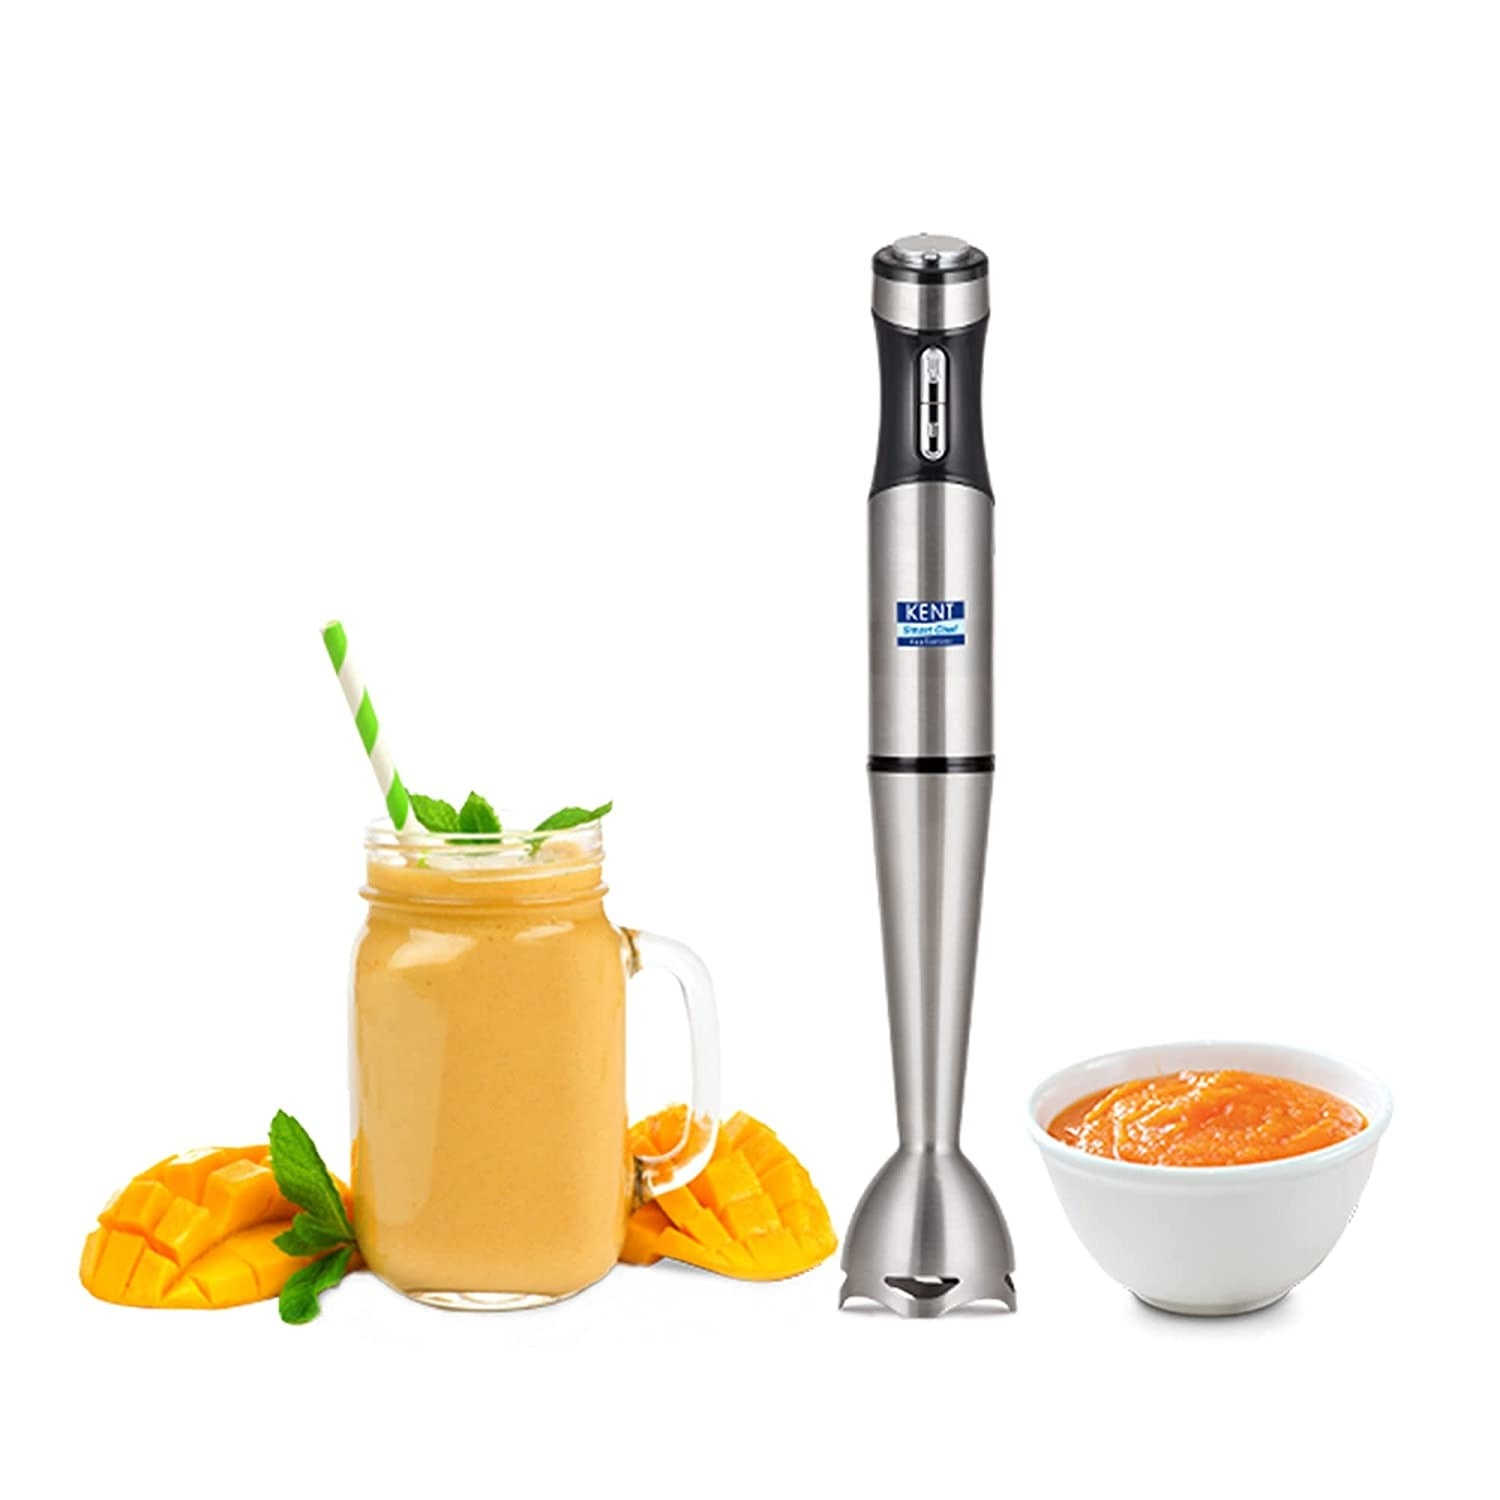 An image of a hand blender, mango smoothie and a sauce